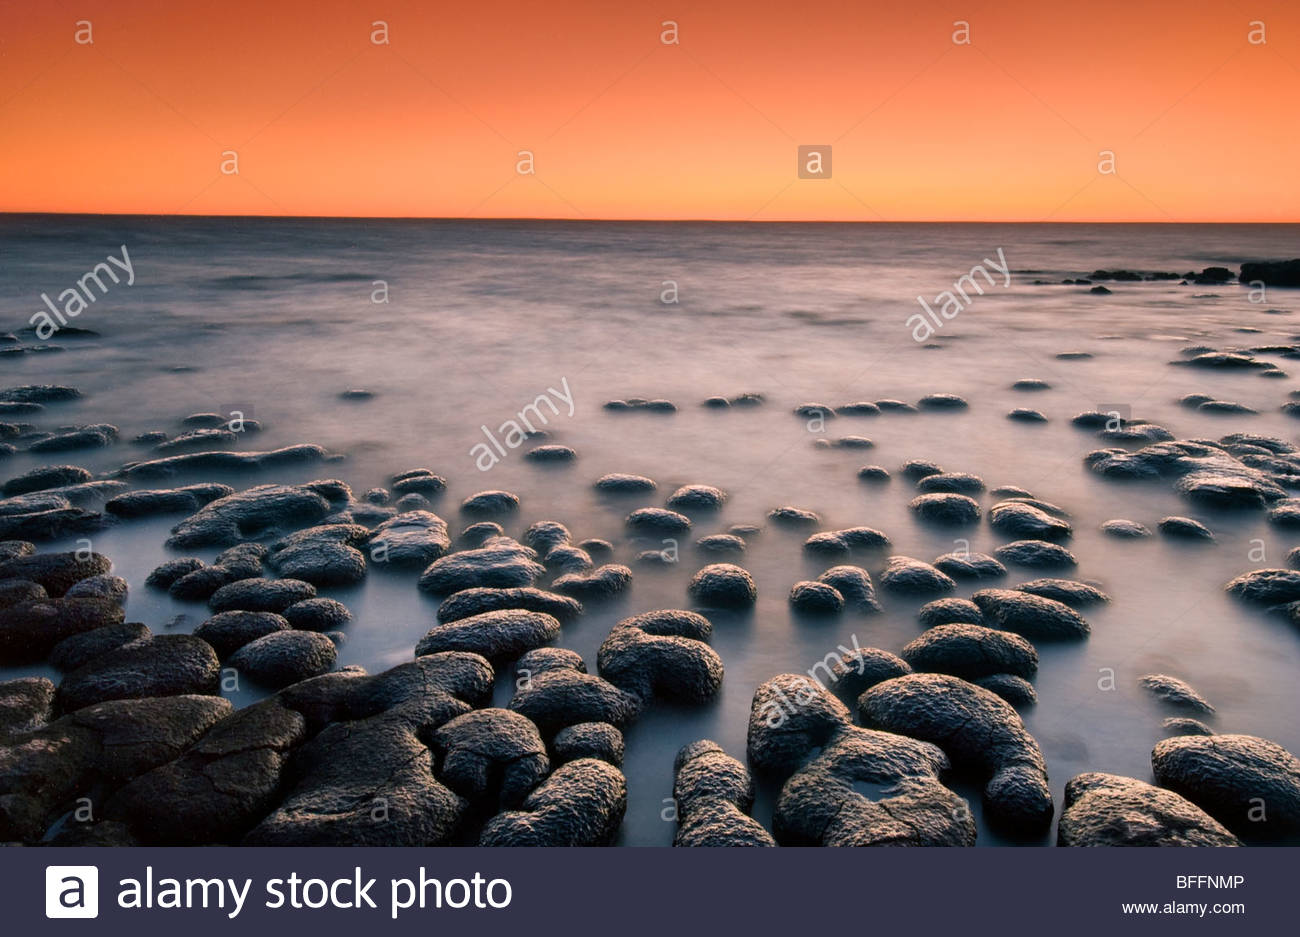 Stromatolites at dusk, Shark Bay, Western Australia - Stock Image